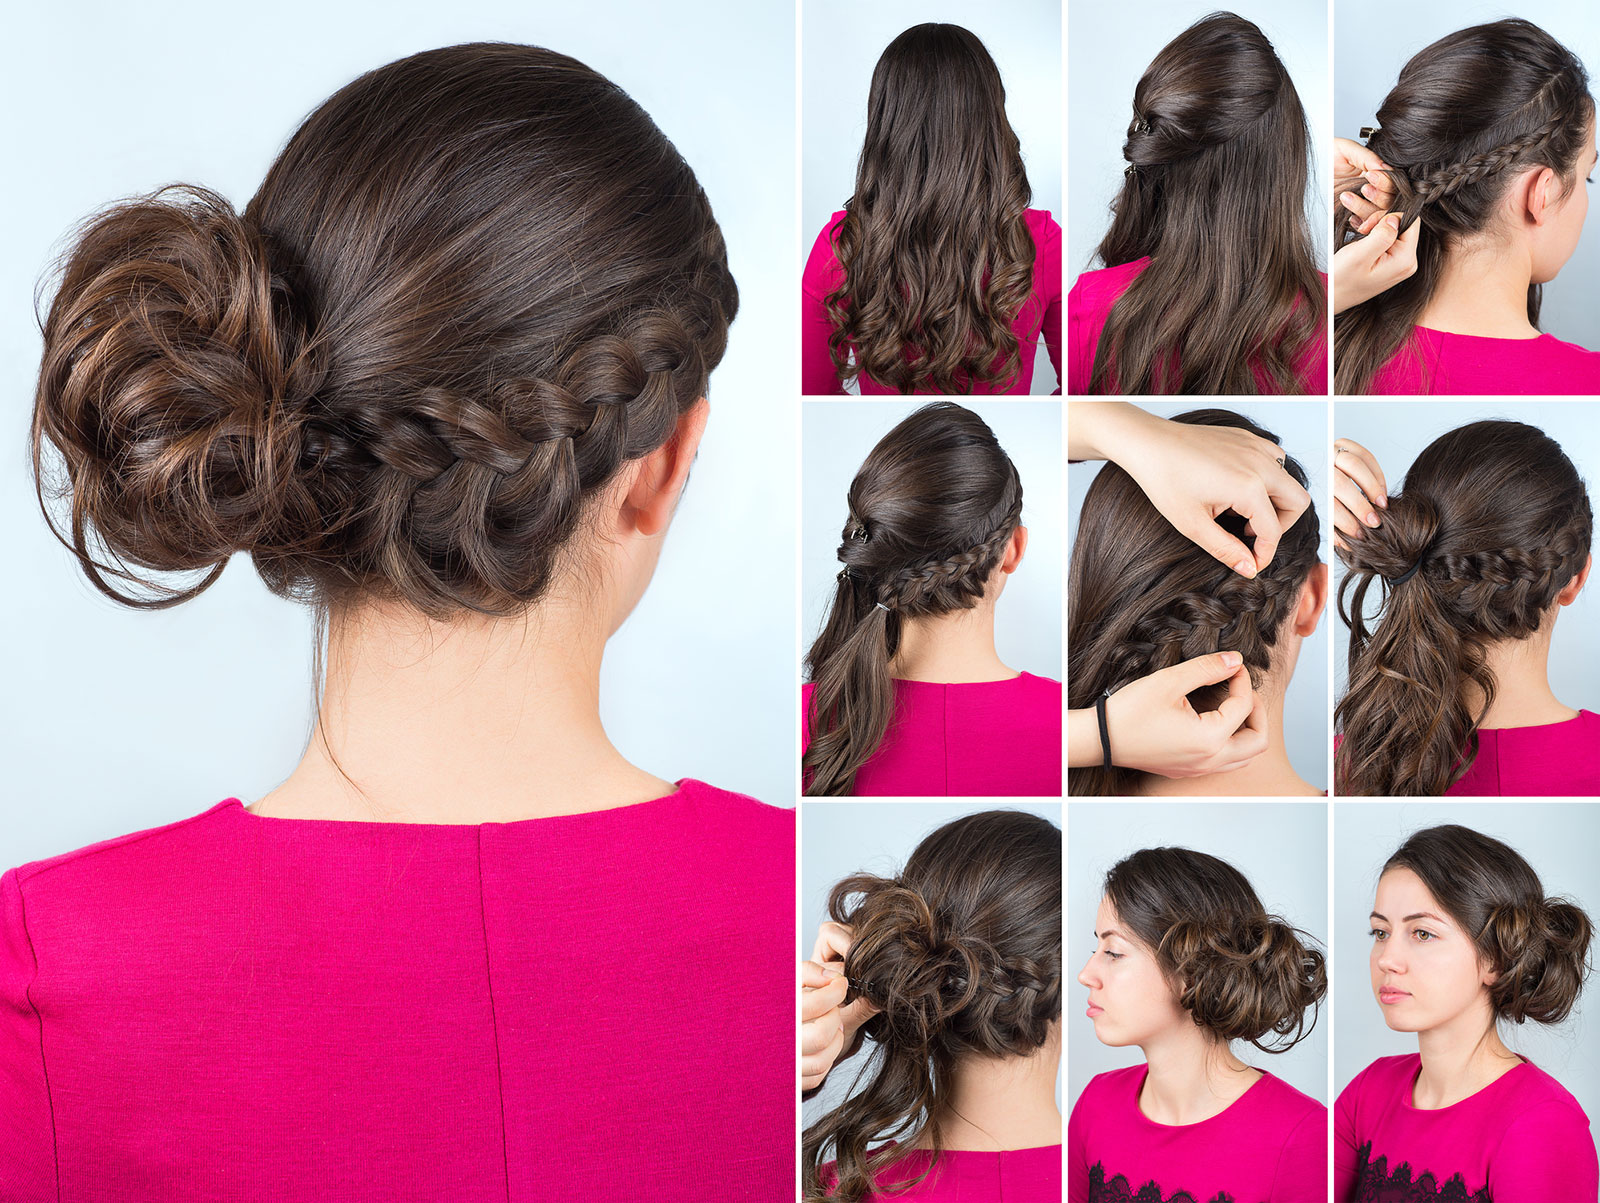 Braided side bun updo for long hair